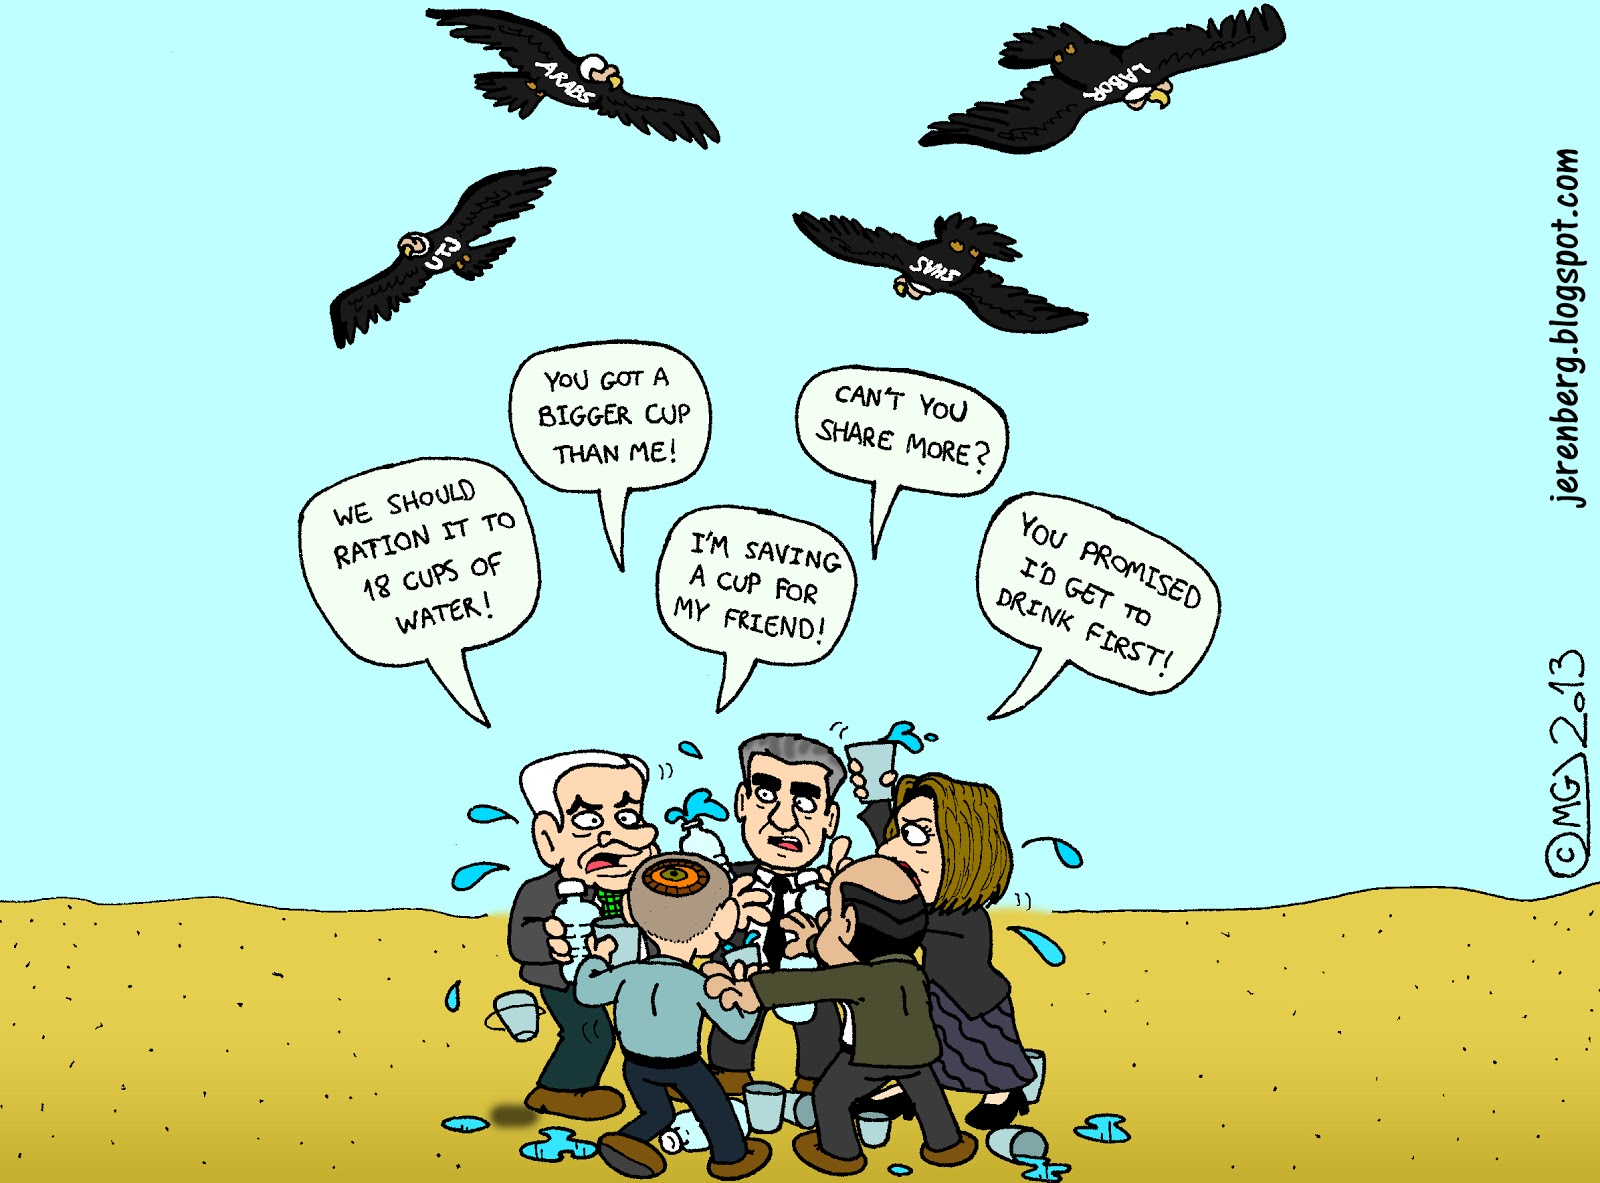 Cartoons pic of rainy day images amp pictures becuo - Politicians People Arguing In Middle Of Desert Binyamin Bibi Netanyahu Yair Lapid Tzipi Livni Shaul Mofaz